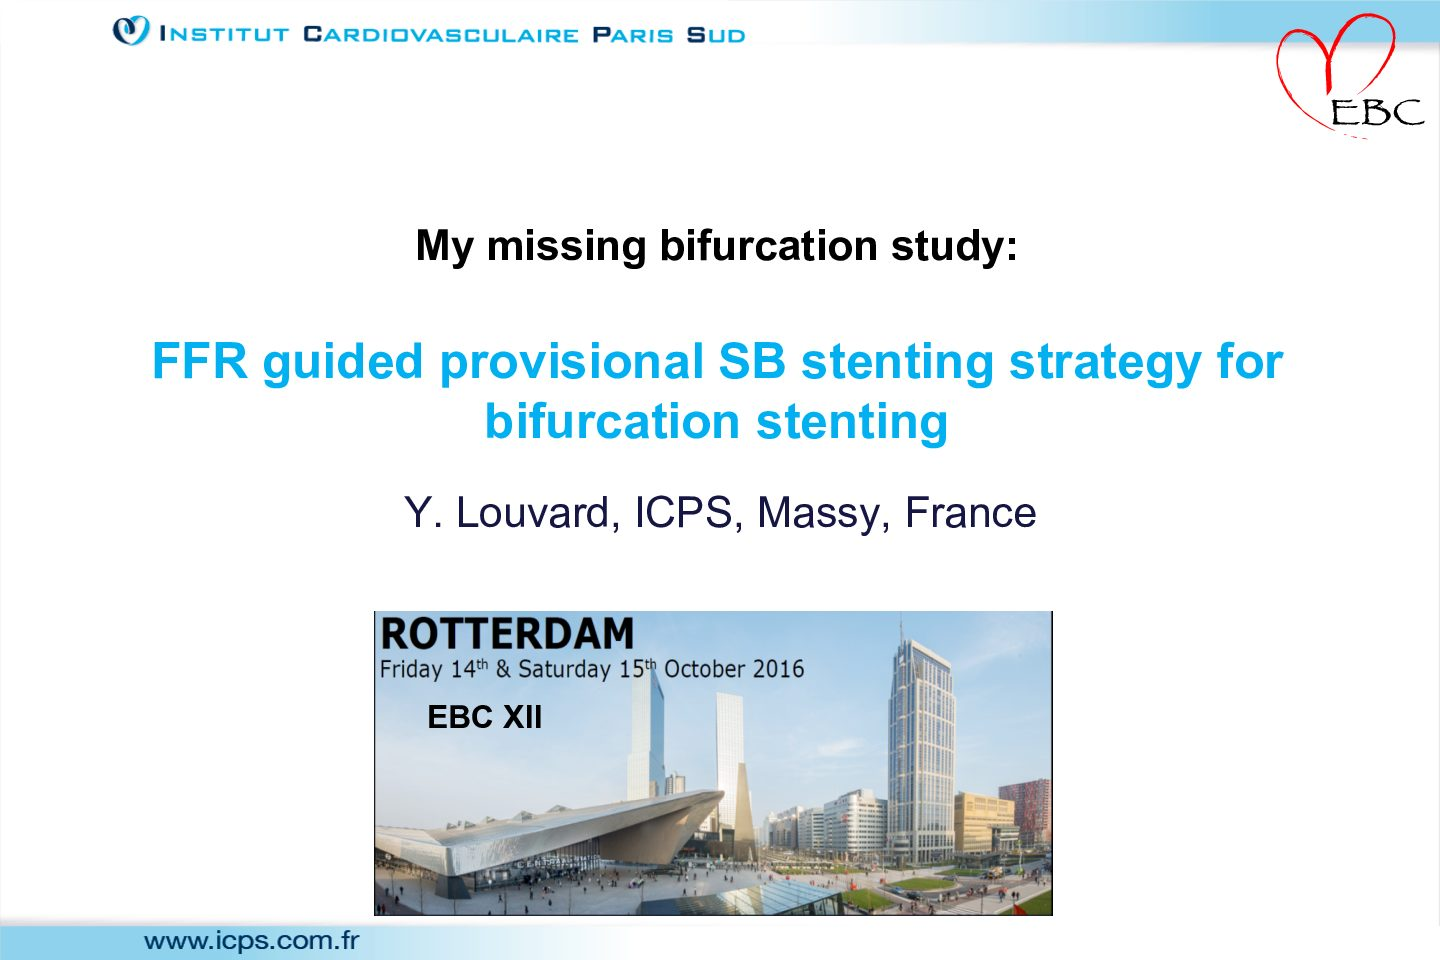 FFR guided provisional SB stenting strategy for bifurcation stenting